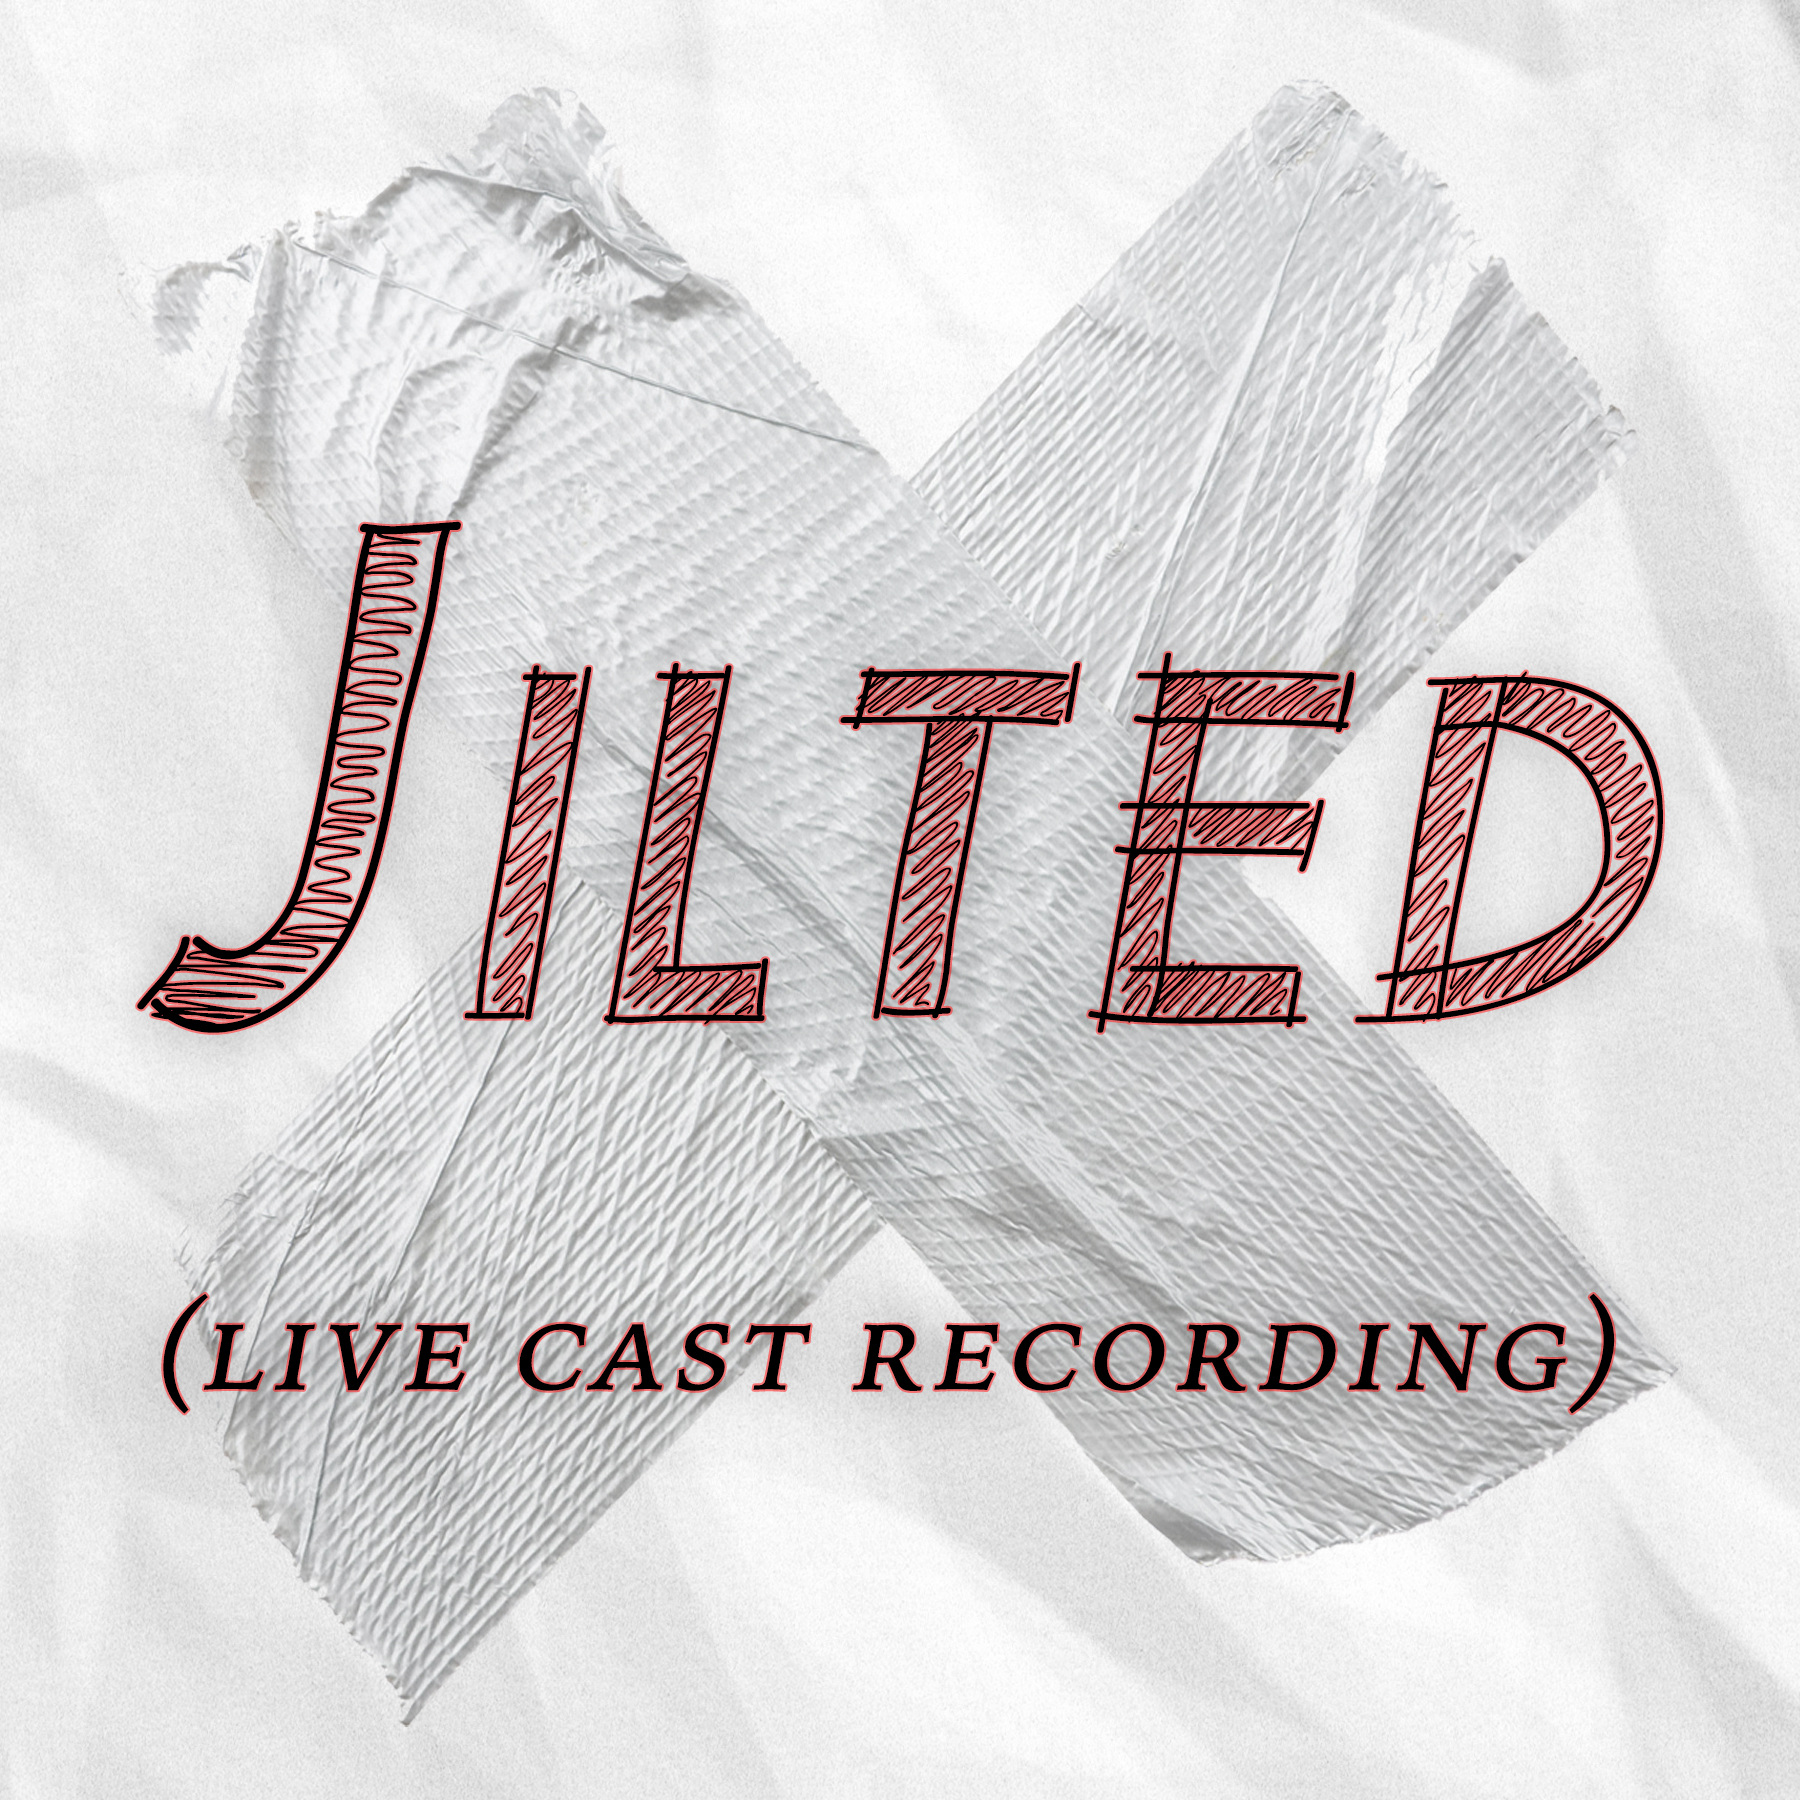 Jilted (Live Cast Recording) - The live cast recording of our workshop of Jilted in the 2017 Hamilton Fringe Festival is now available at all your favourite digital music stores and streaming services!Buy on iTunesListen on SpotifyListen on Google PlayBuy on BandCamp